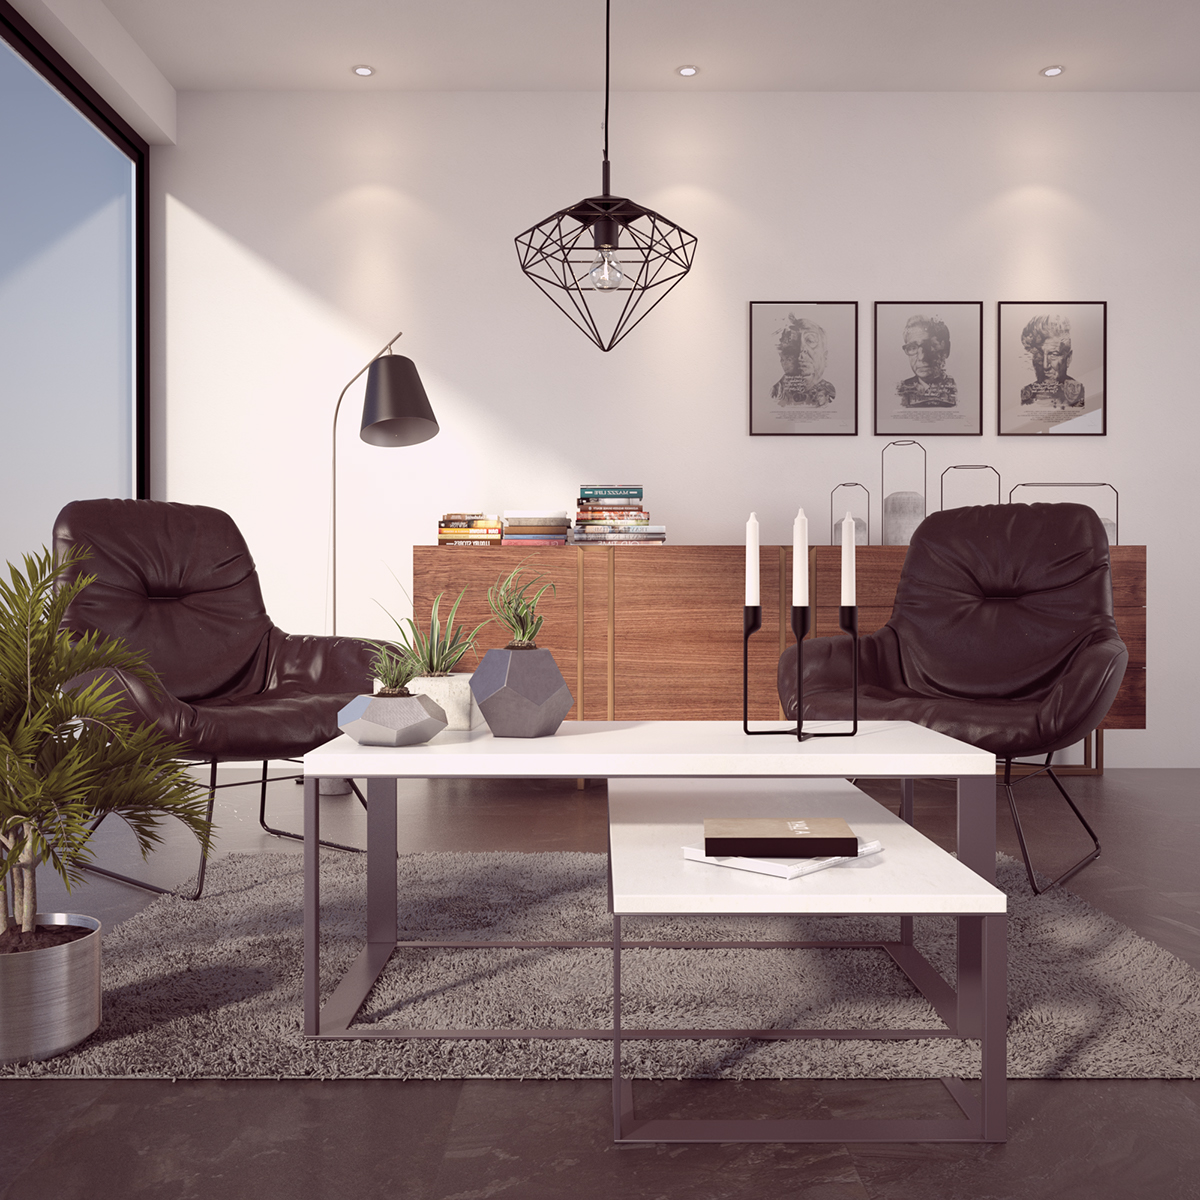 Free 3d model interior vray 3ds max on behance - Model designer interiors ...